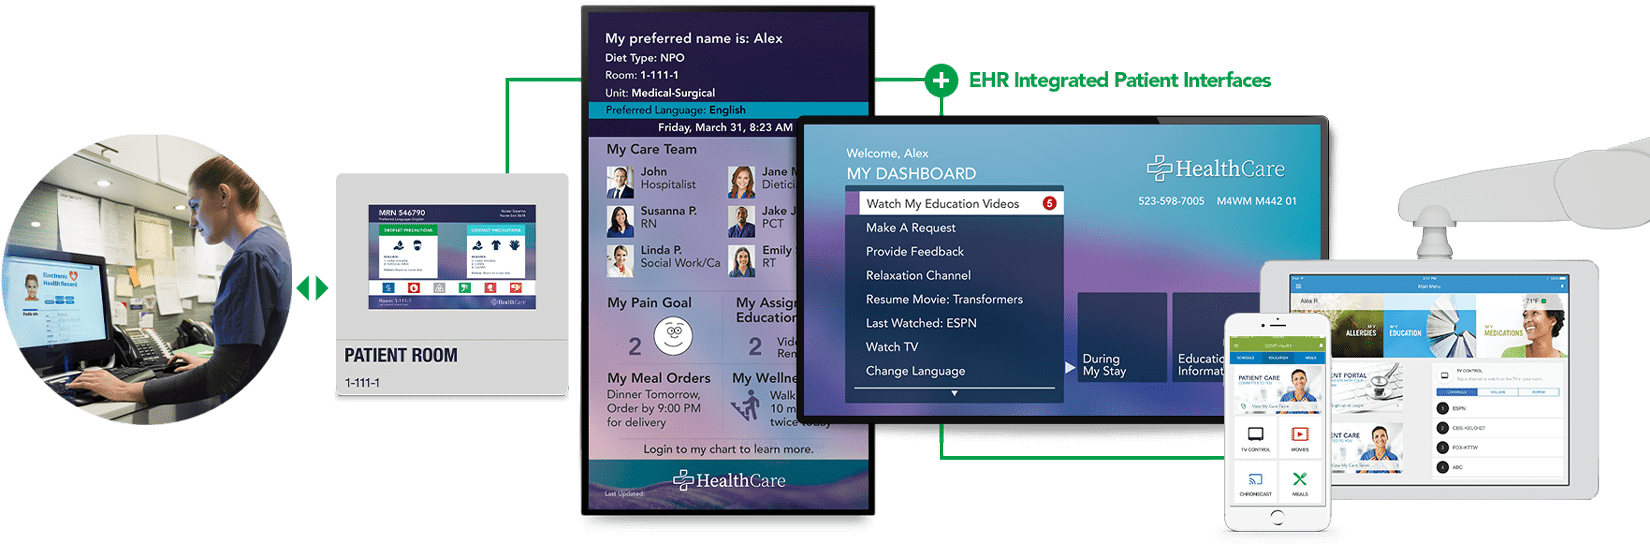 technology-products-ehr-integrated-alex-1650x600-min